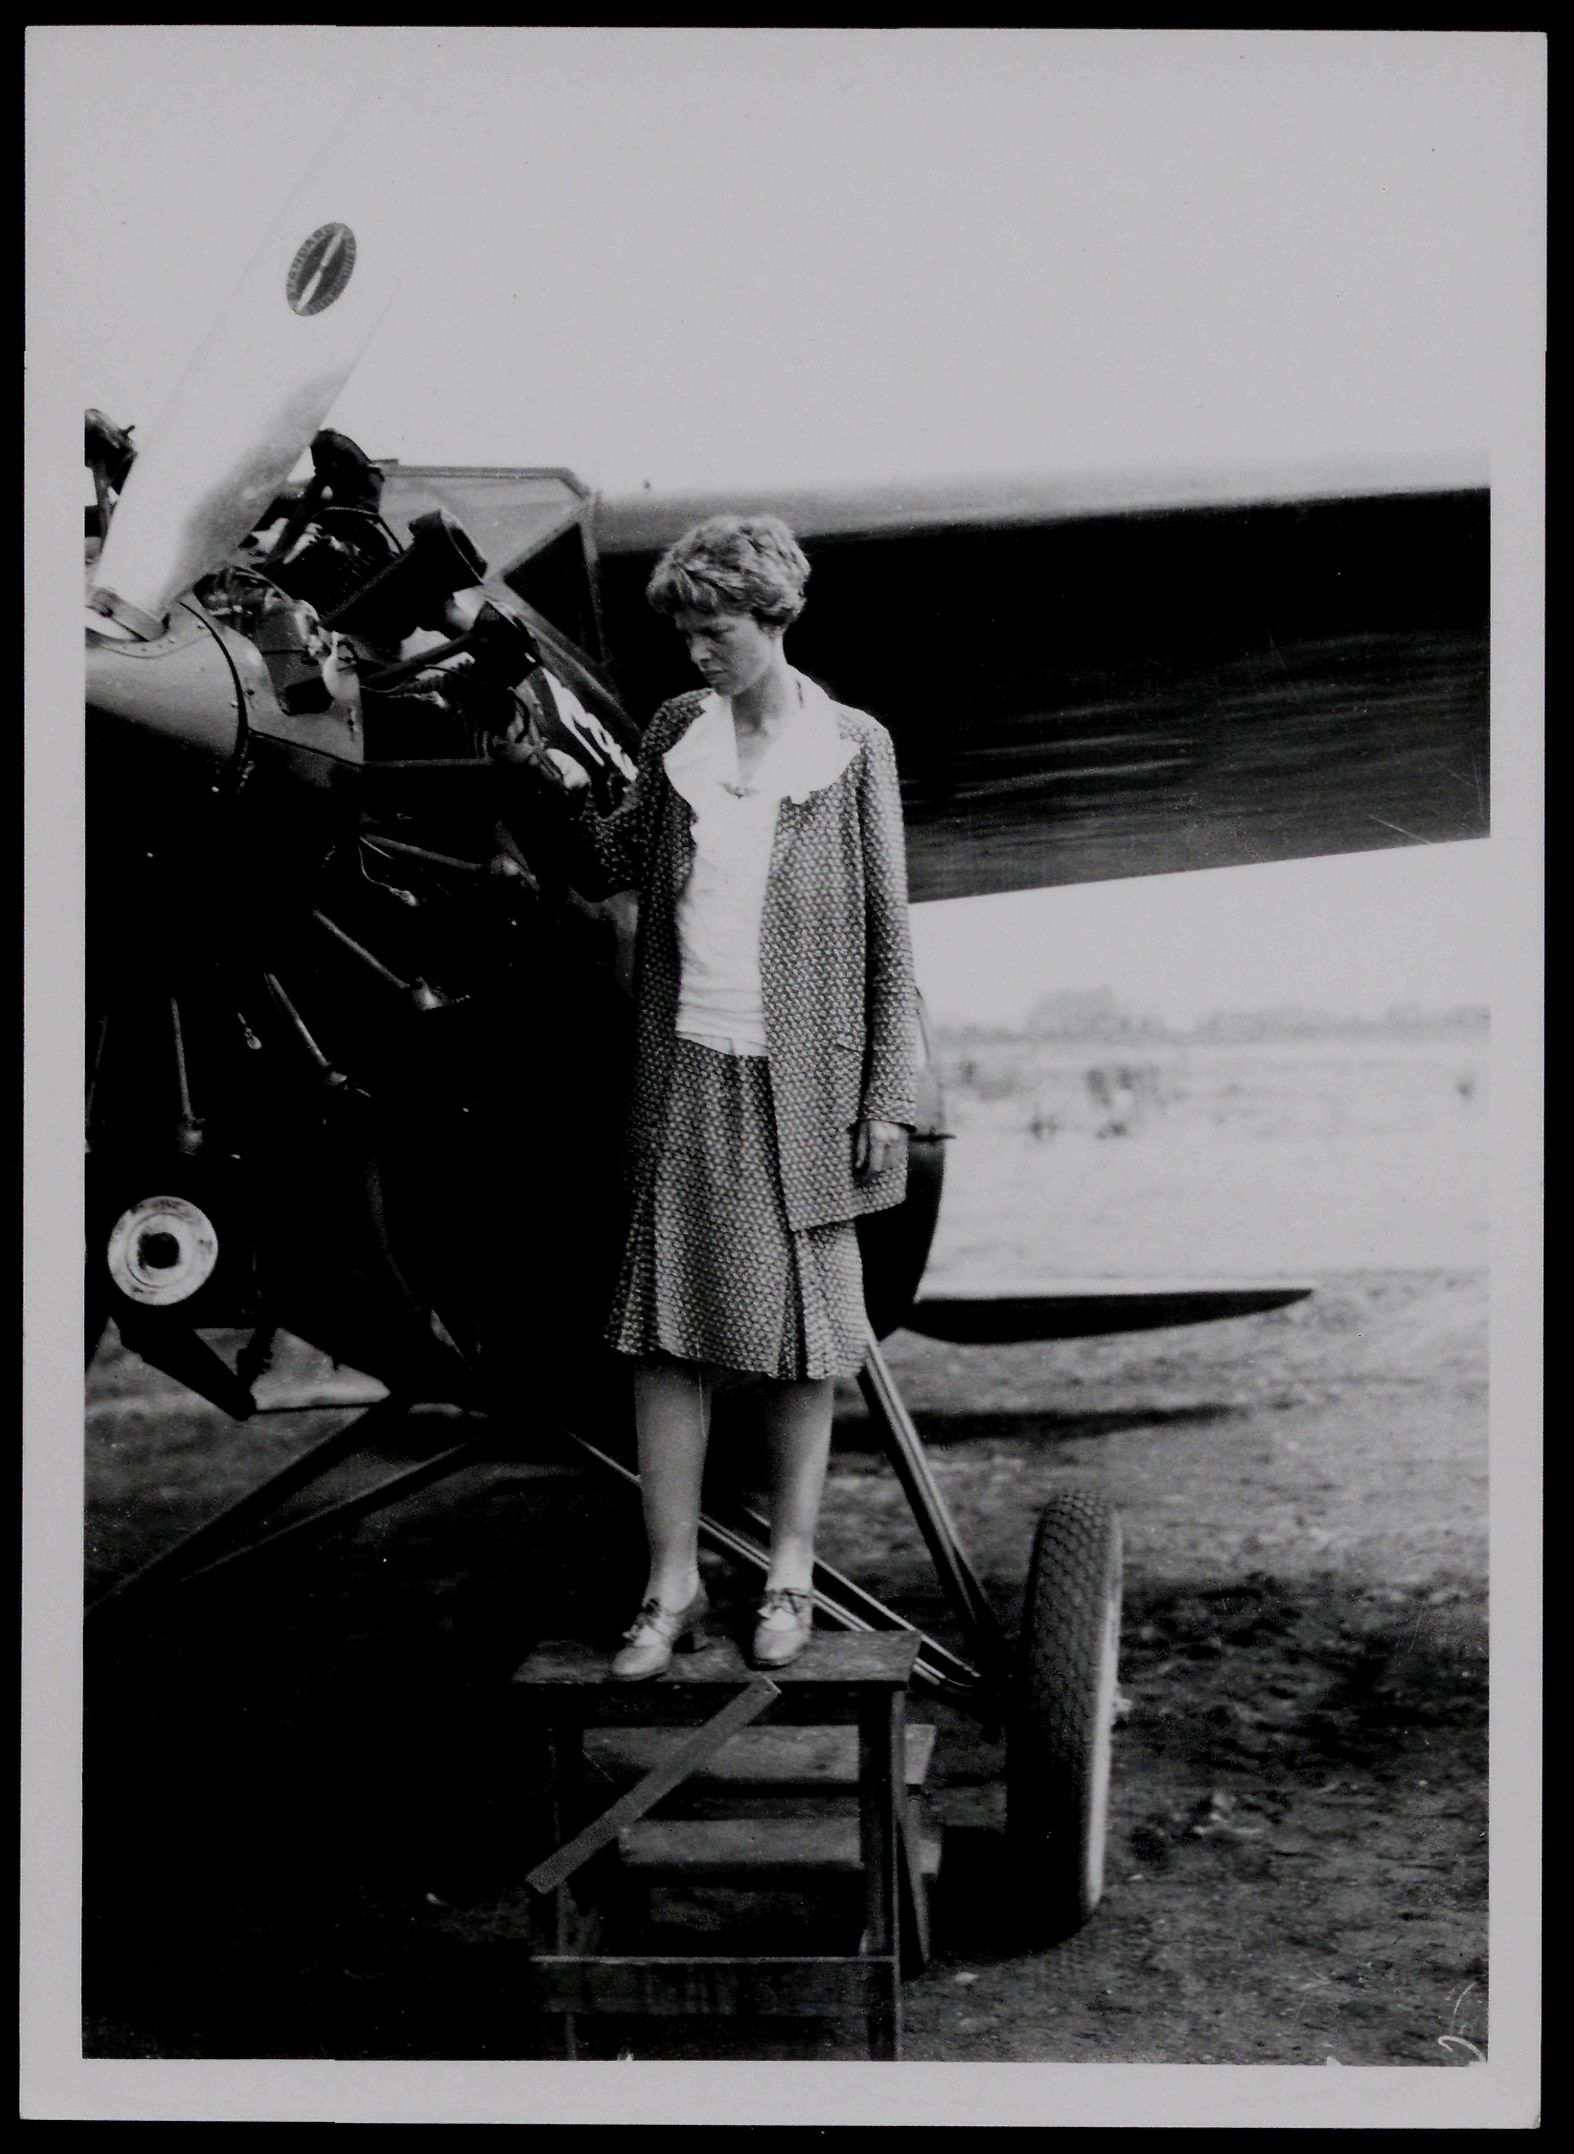 Amelia Earhart in 1930, likely photographed by John W. Underwood (Gilder Lehrman Institute, GLC07243.006.02)